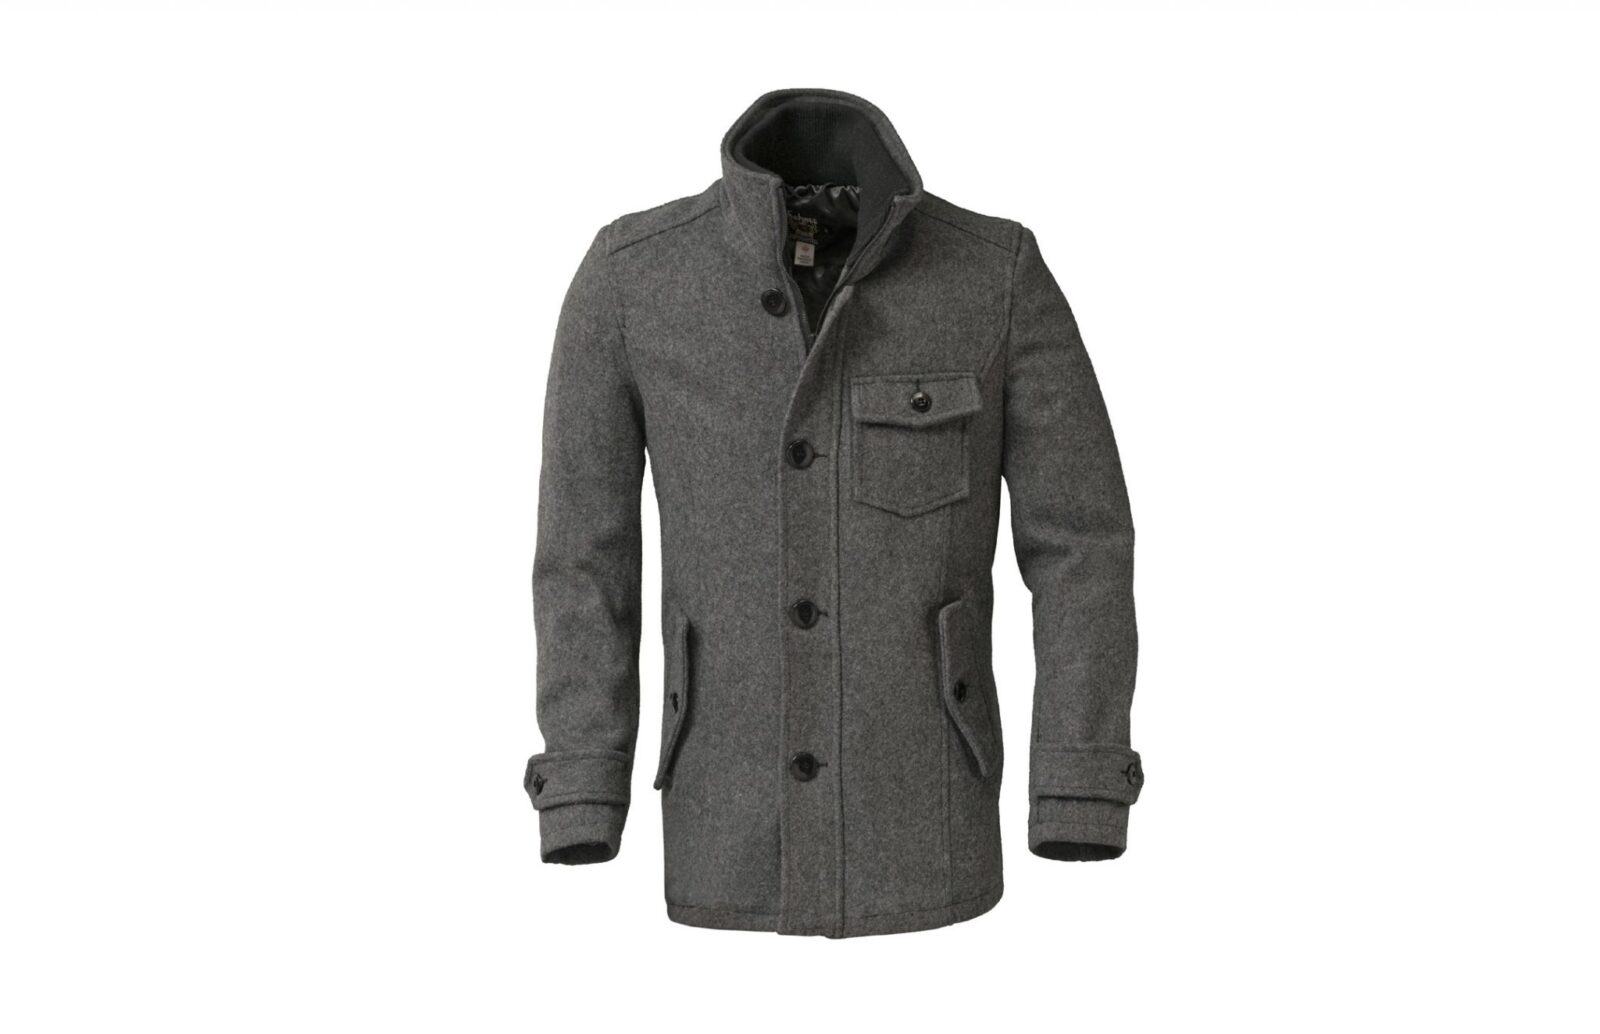 Schott Wool Car Coat 1600x1034 - Schott NYC Wool Car Coat